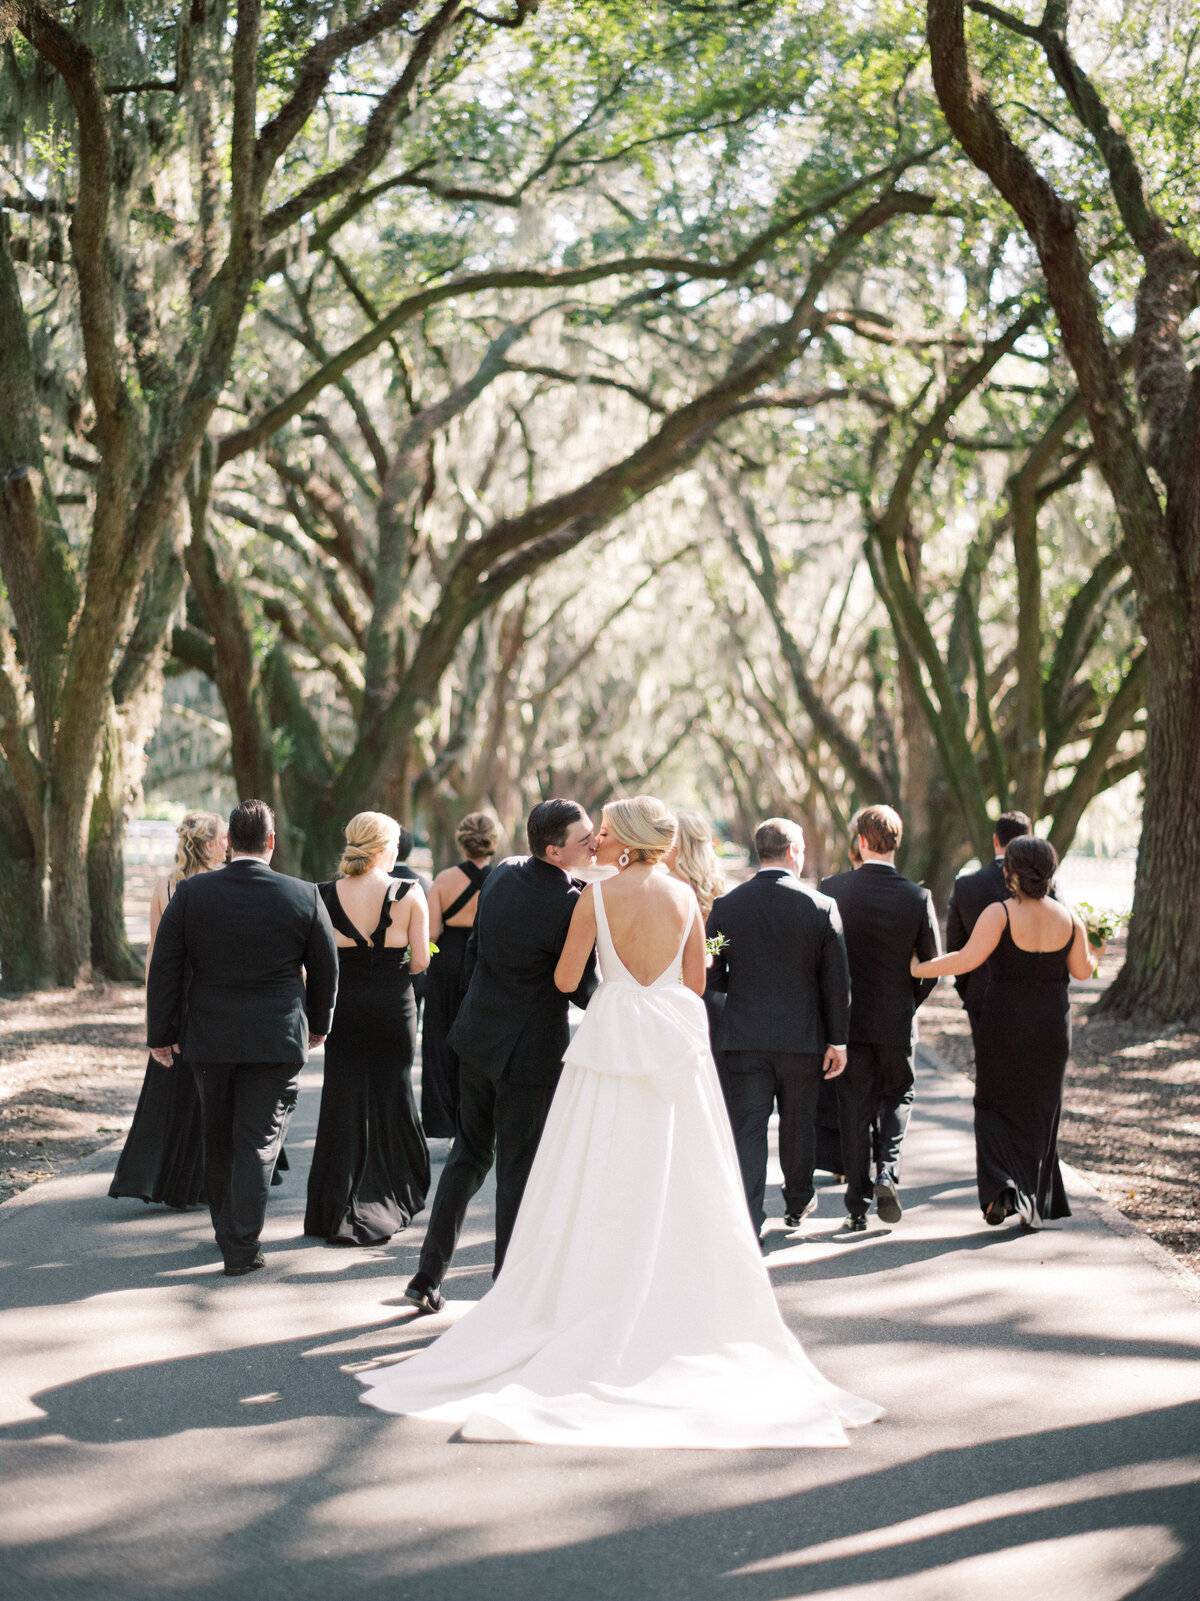 Belfair-Plantation-Bluffton-Hilton-Head-Island-Wedding-Philip-Casey-Photo-27